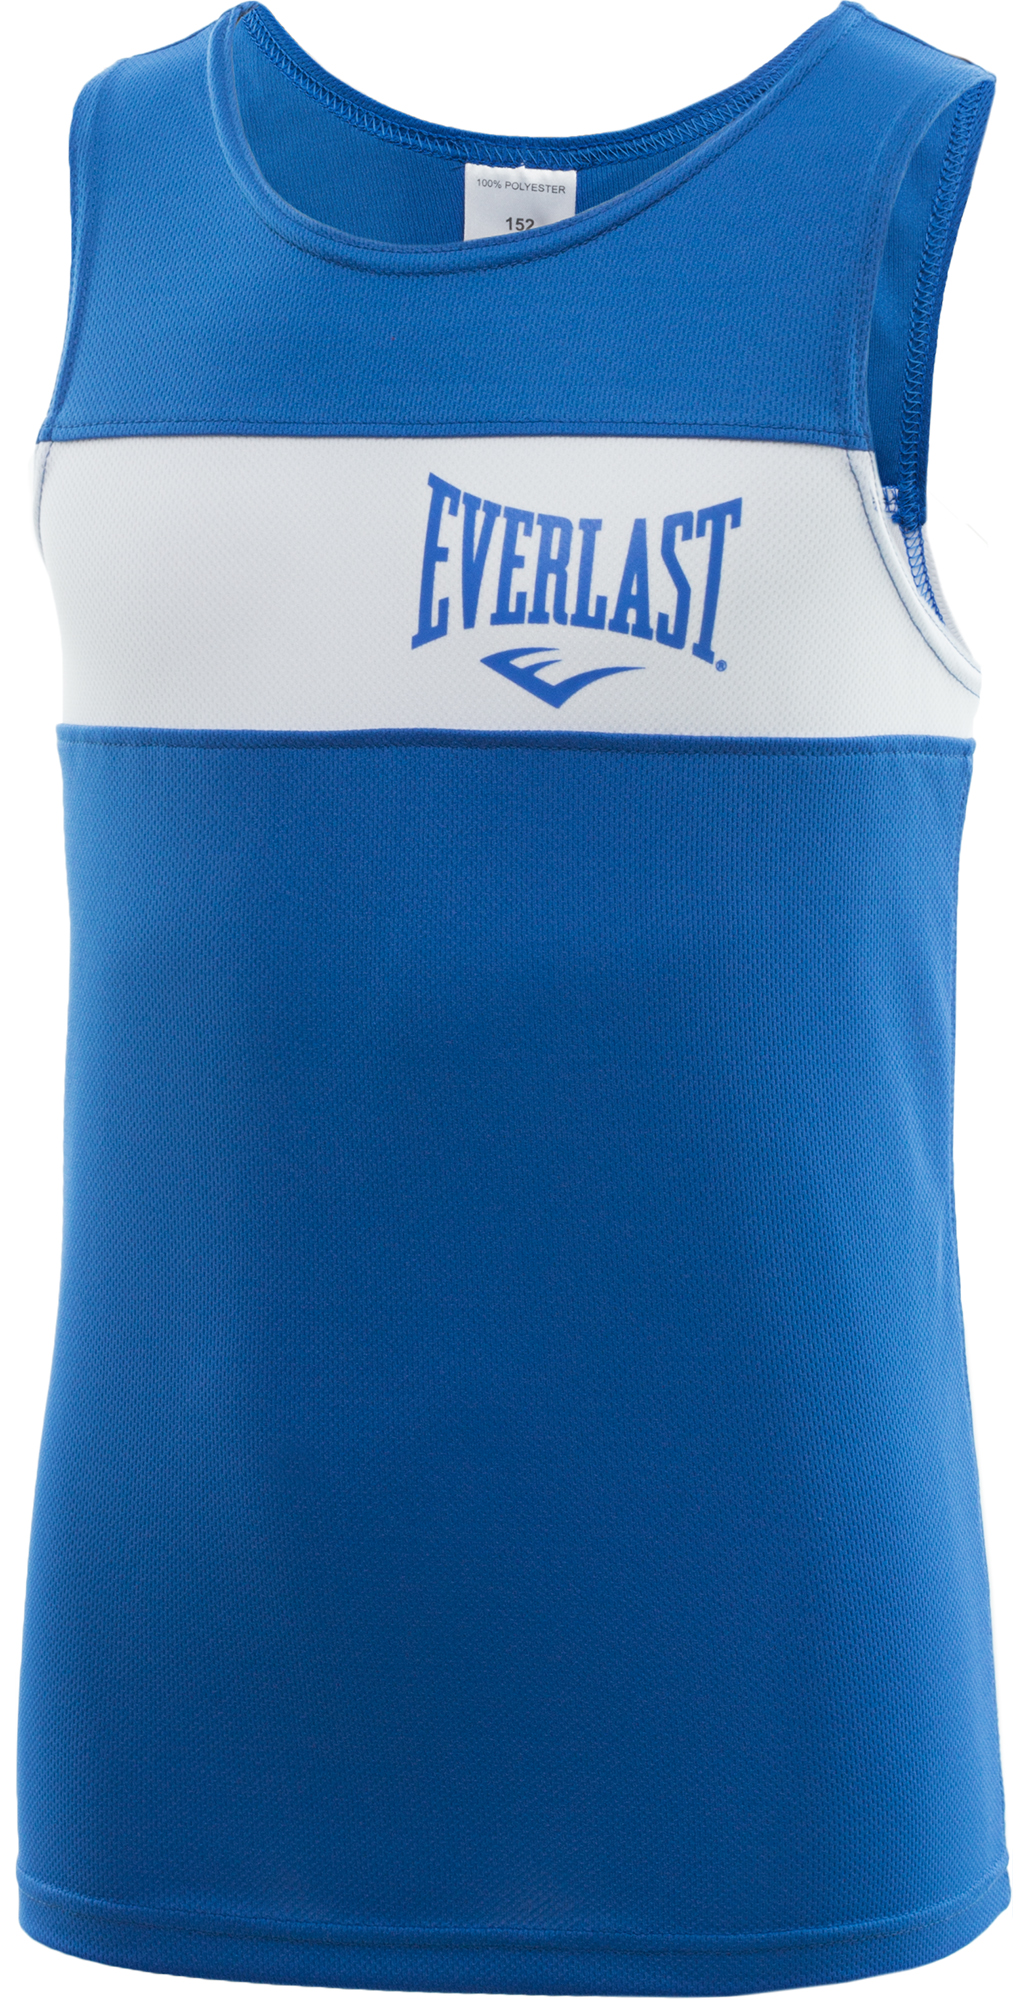 Everlast Майка для бокса детская Everlast Elite, размер 152